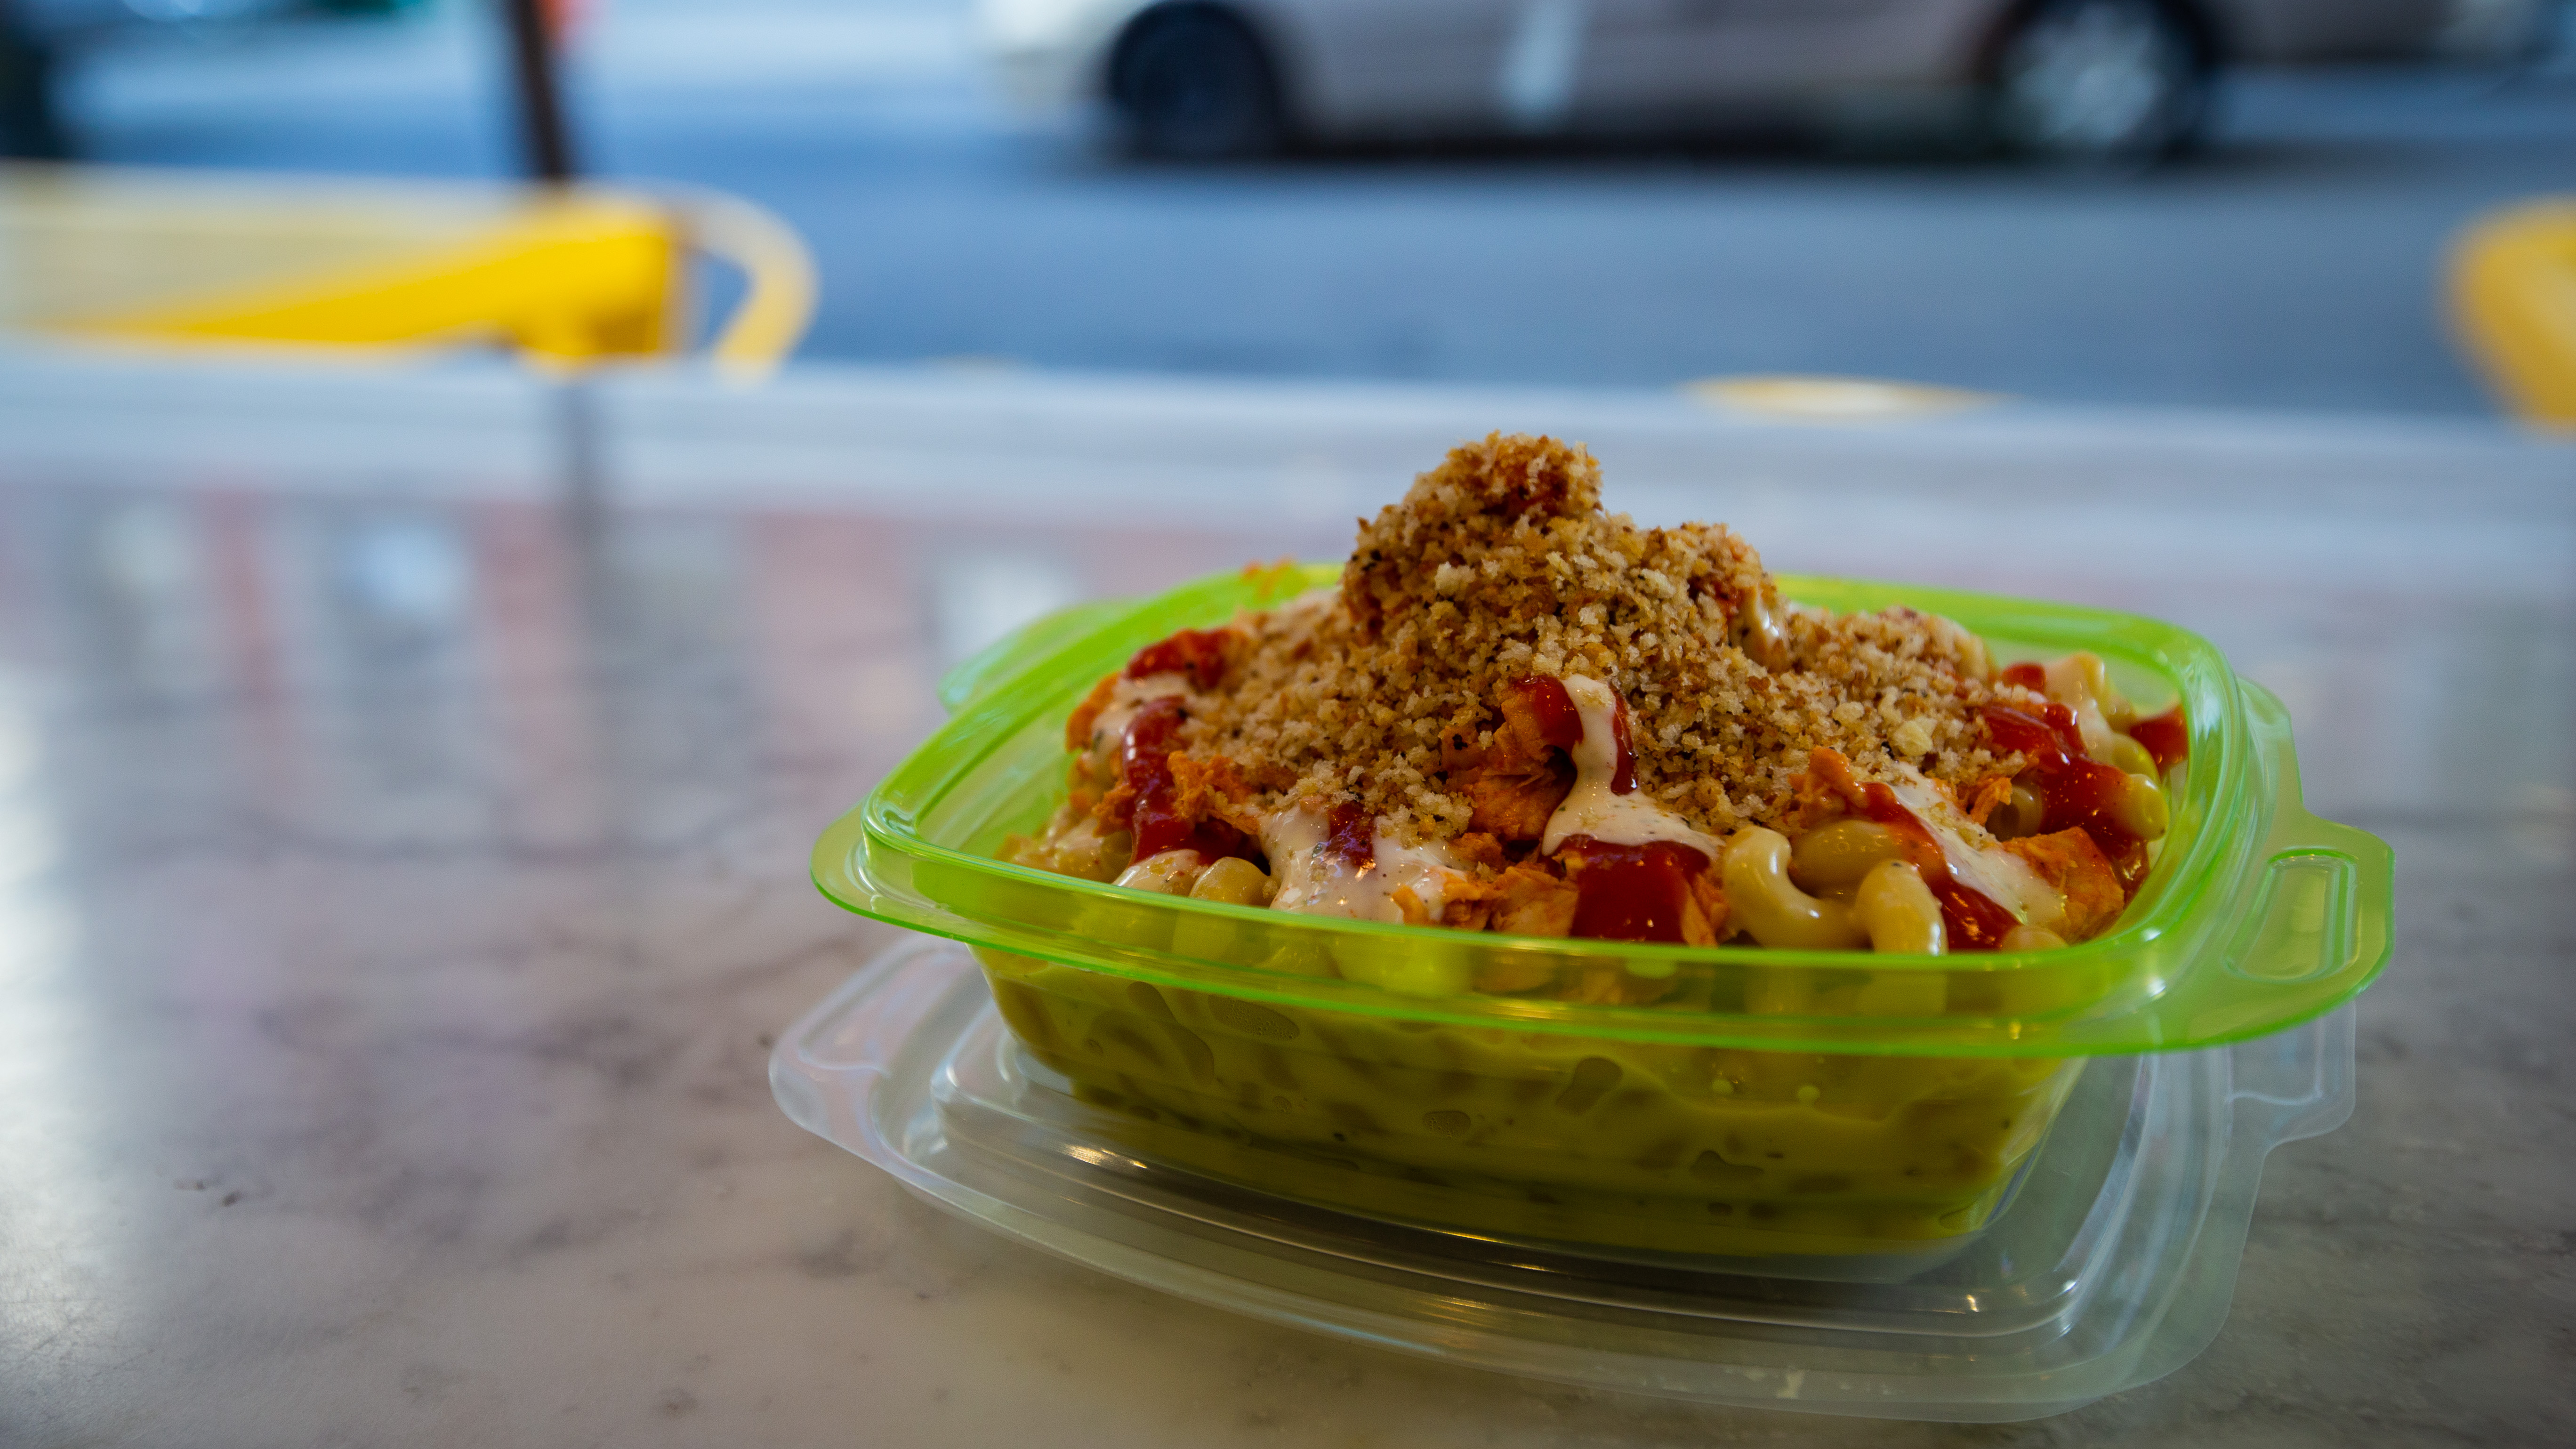 The establishment's In the Buff, a buffalo chicken mac and cheese, is a similar recipe to their promotional dish inspired by Gritty.